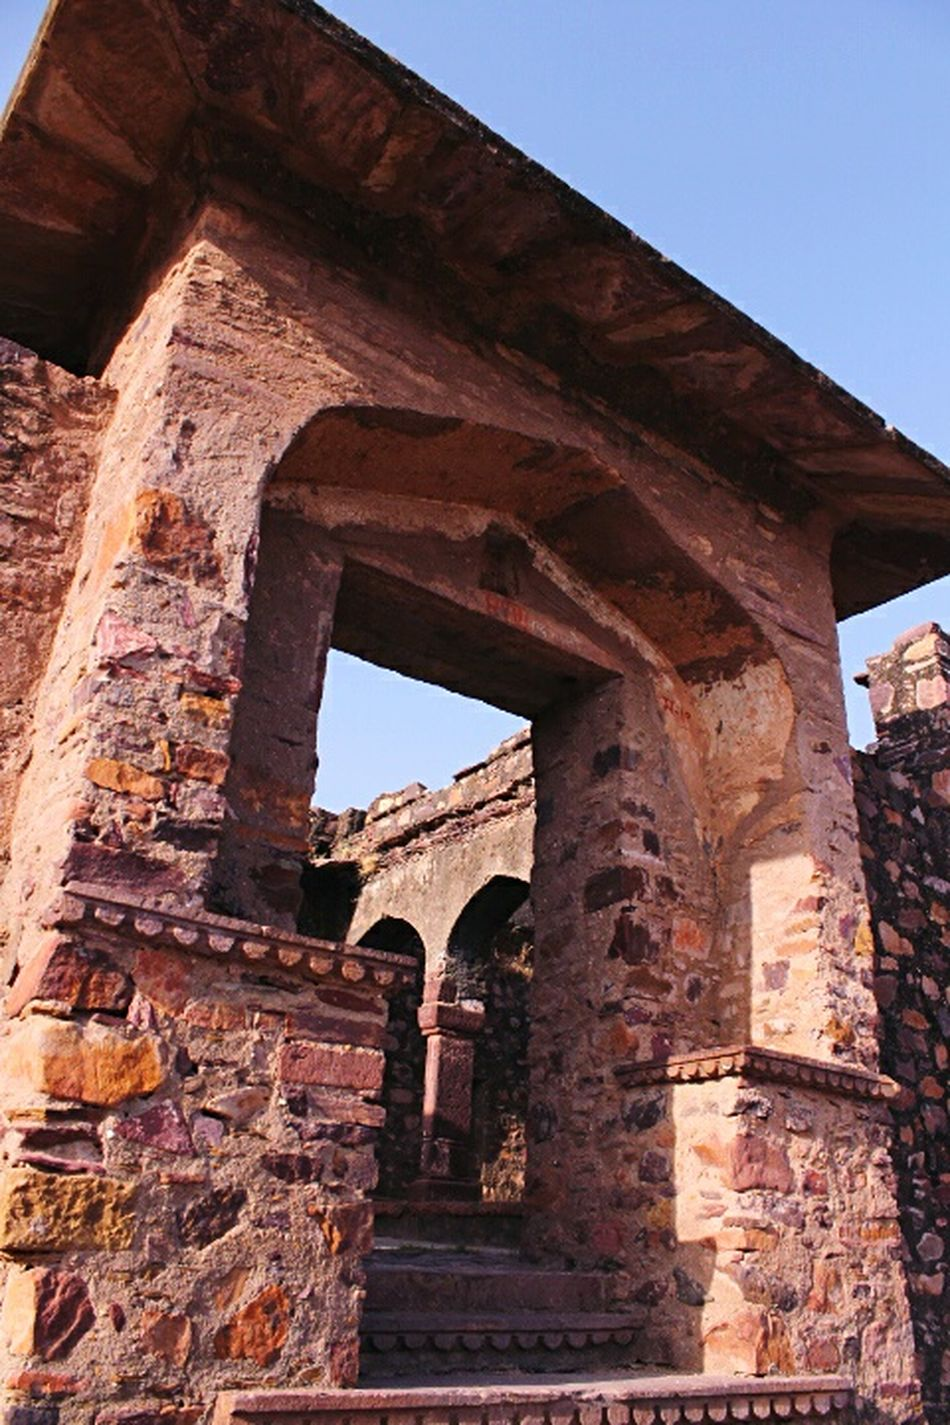 Brick Architecture Old Ruin Arch Built Structure Travel Destinations History Architectural Column Clear Sky Ancient Civilization Outdoors Rajasthan India EyeEmNewHere Check This Out